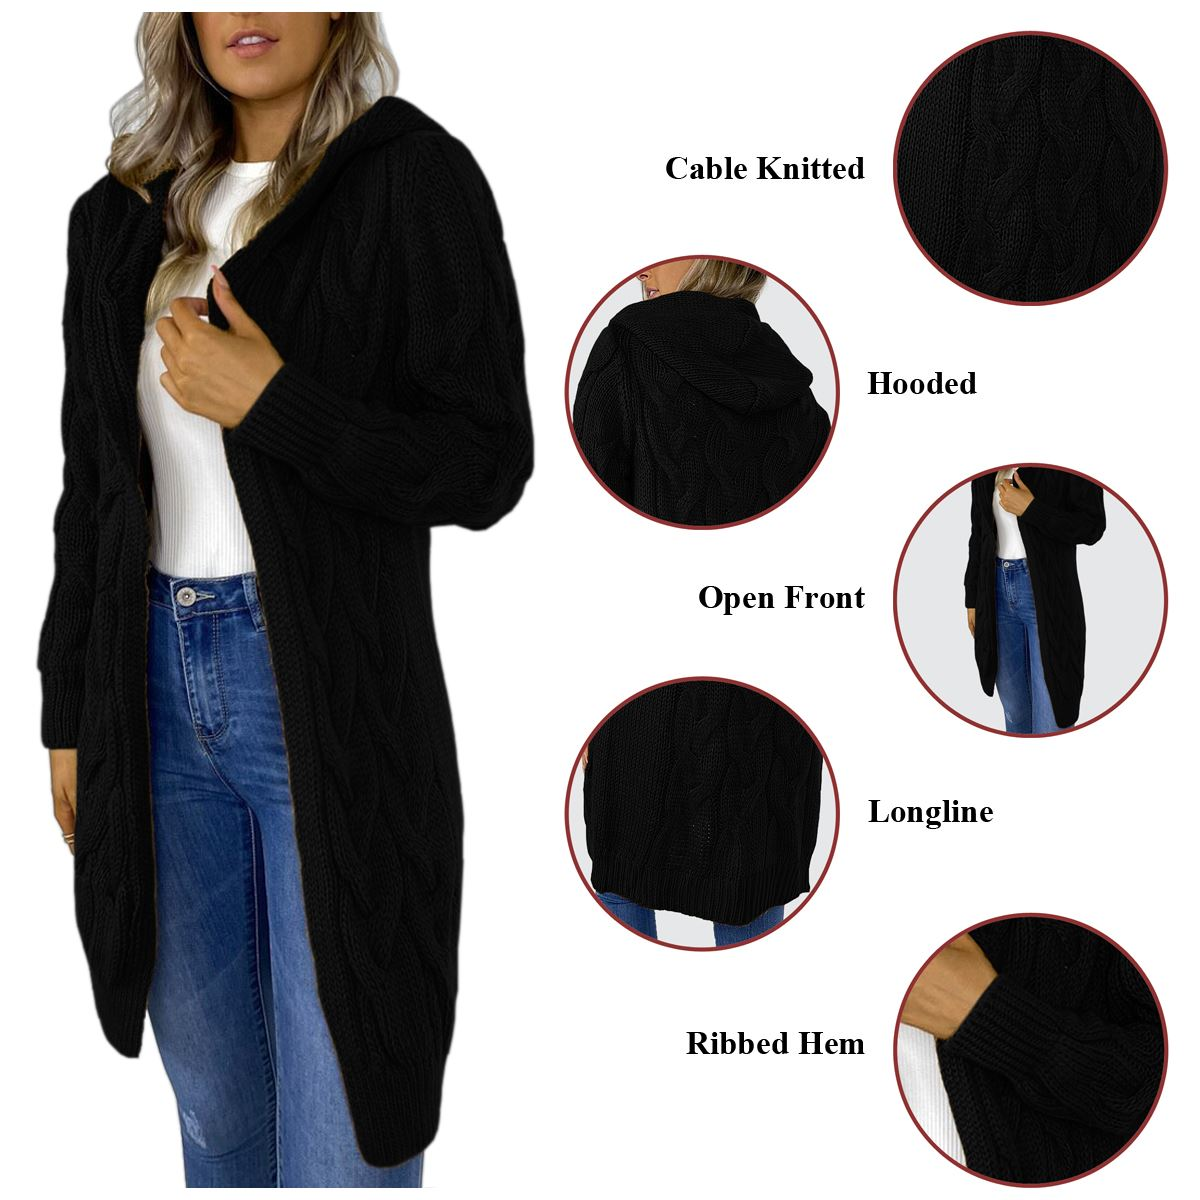 Ladies-Cable-Knitted-Hooded-Open-Longline-Cardigan-Winter-Oversized-Jacket-Top thumbnail 3